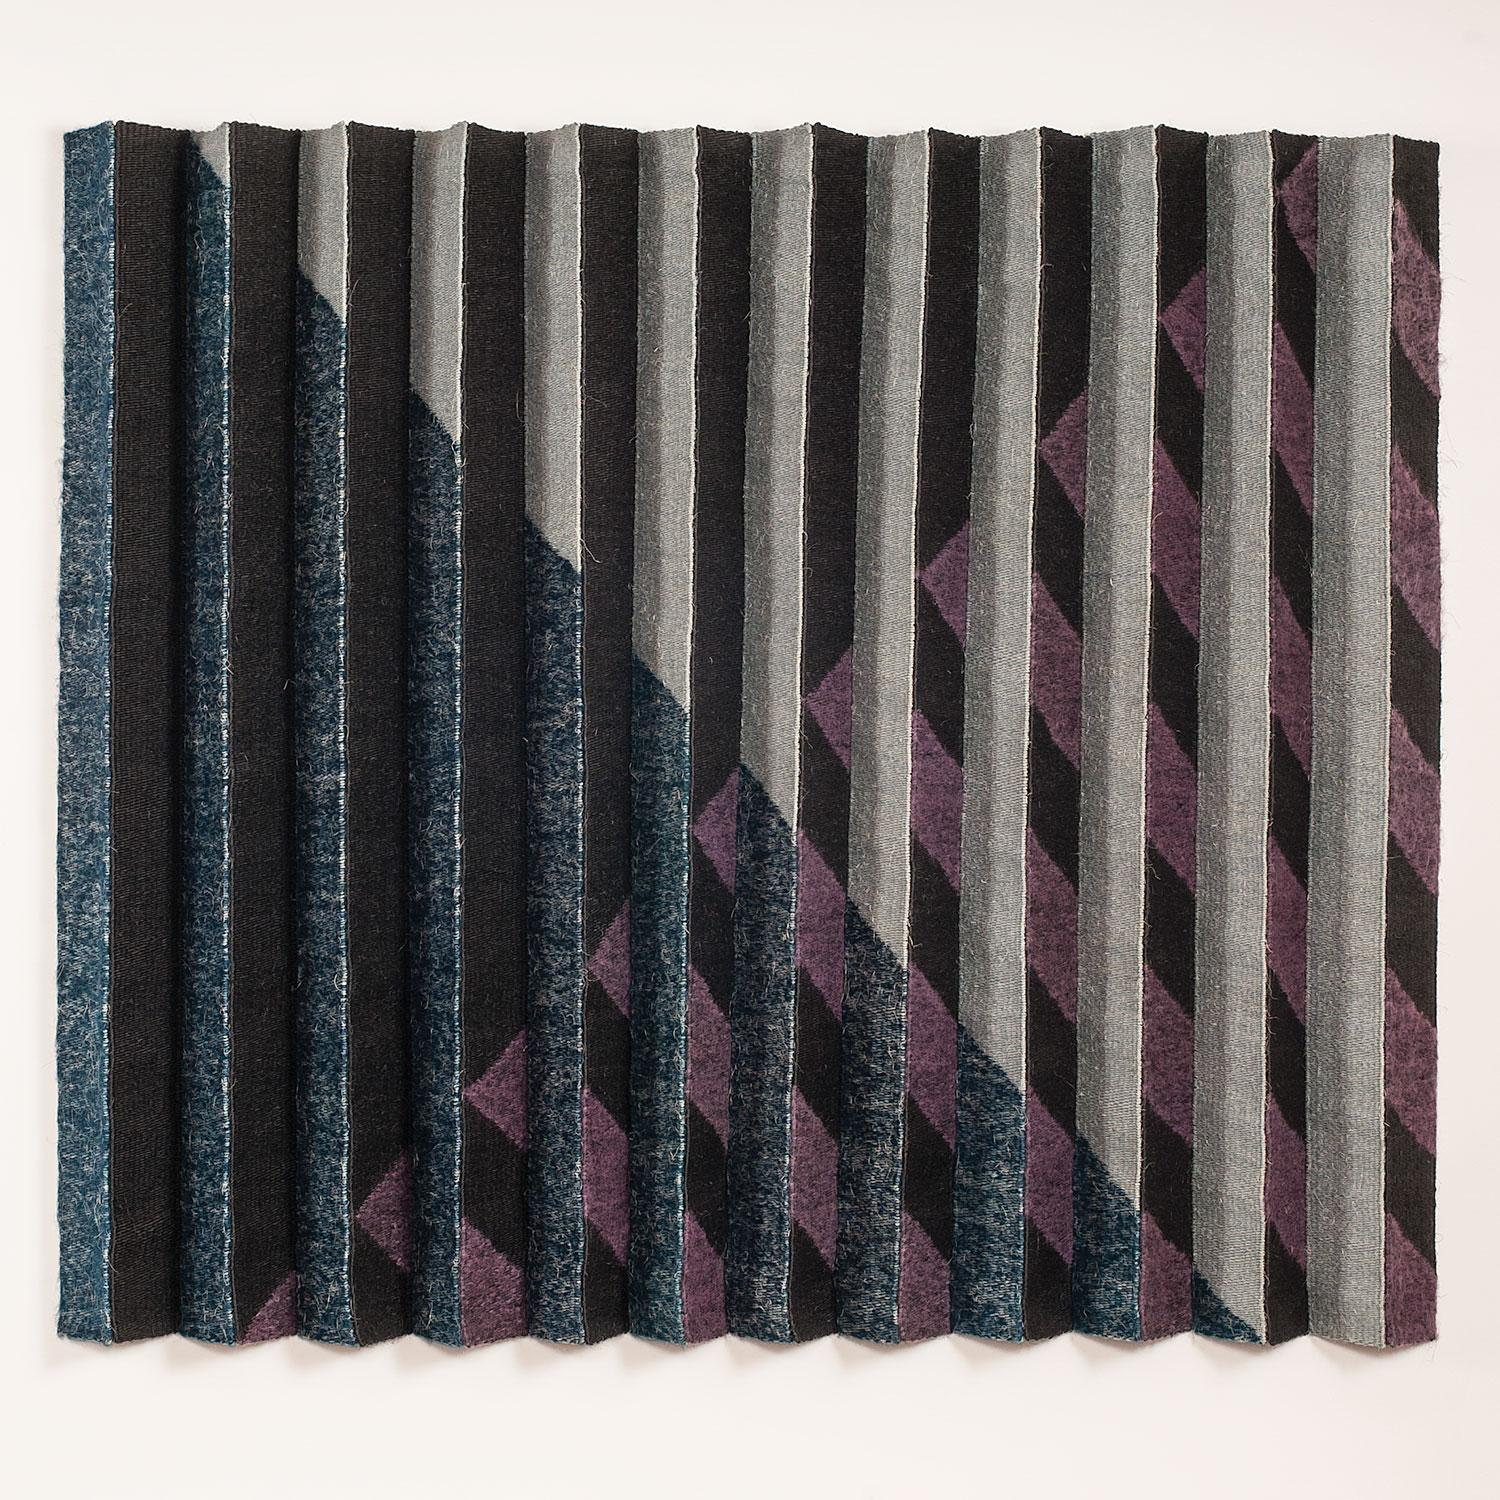 Midnight, Contemporary Geometric Tapestry, Textile Wall Sculpture